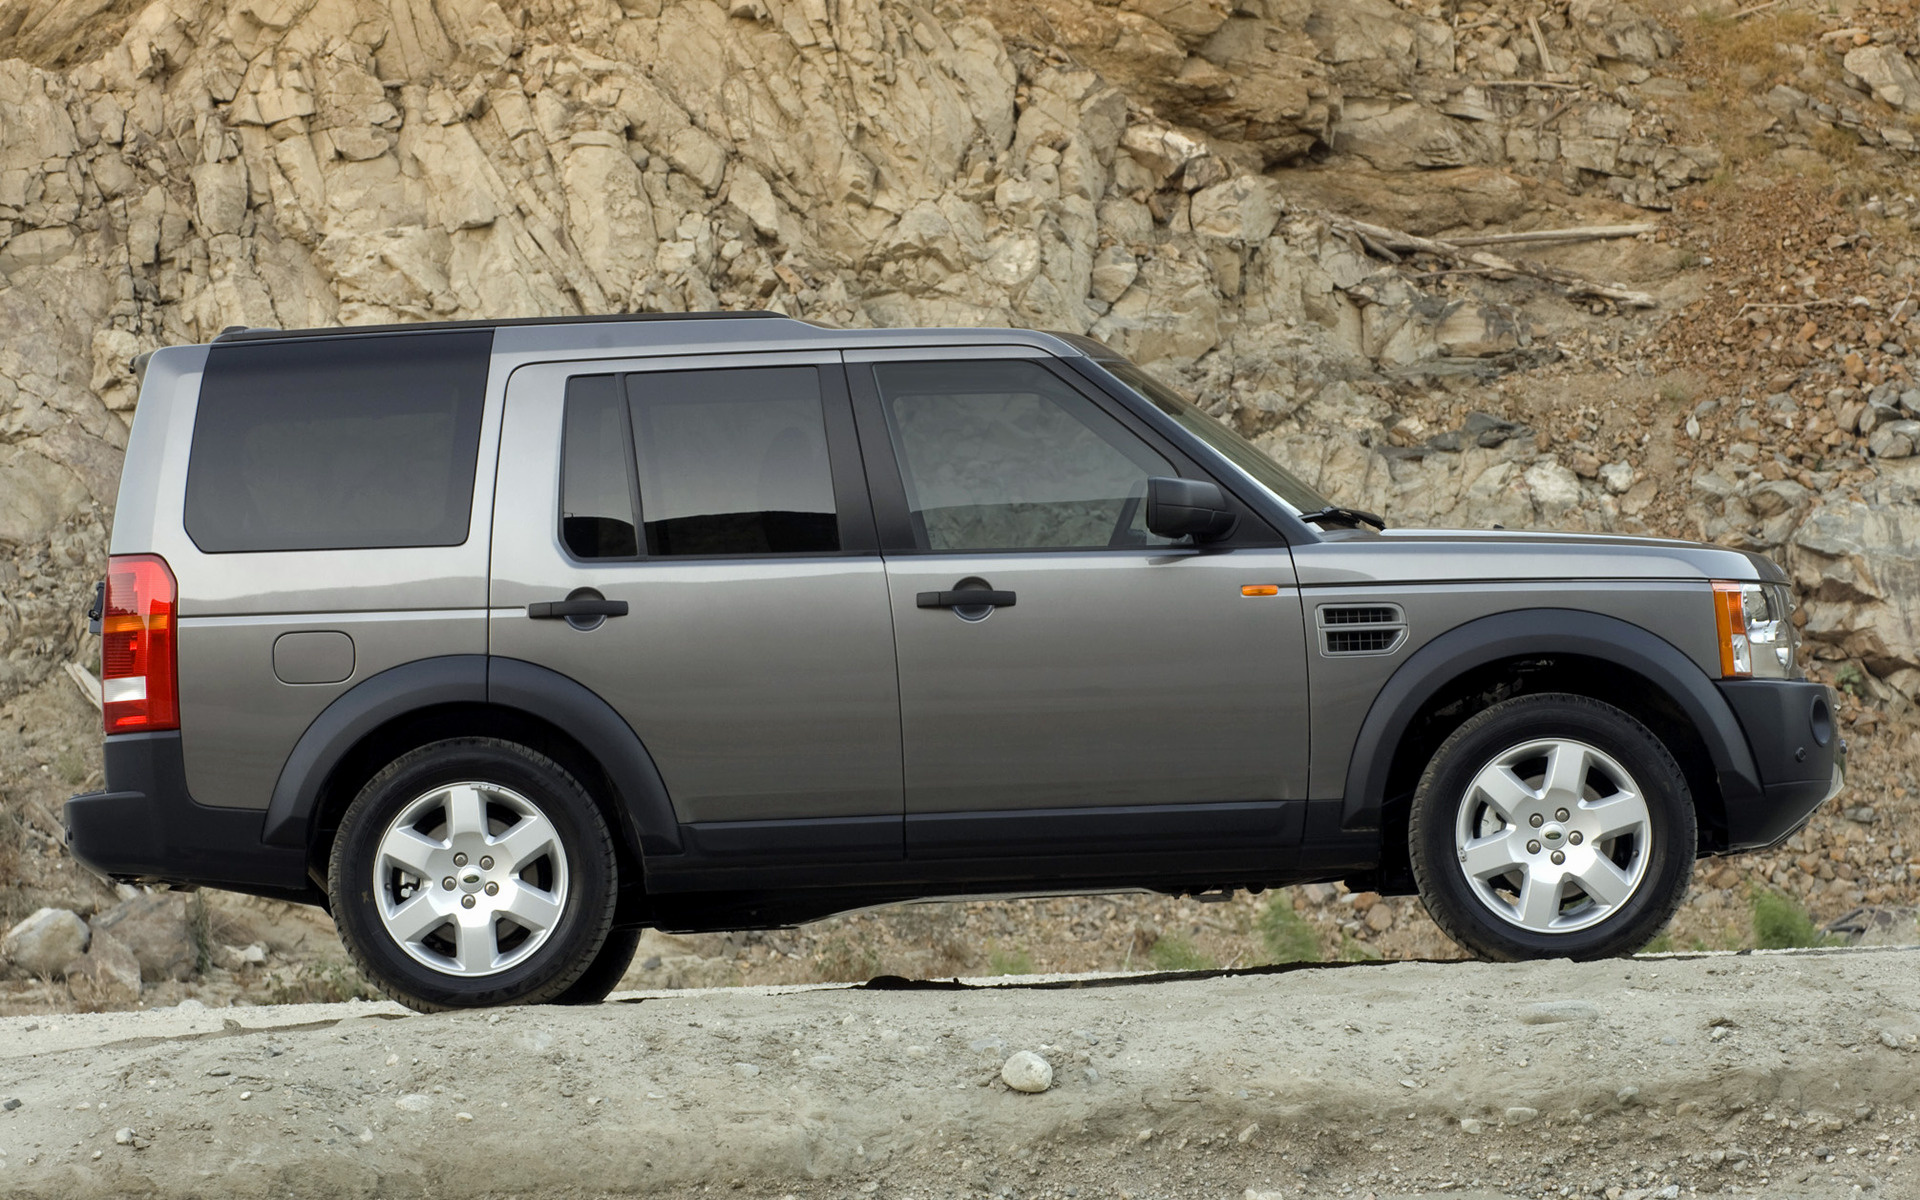 Land Rover LR3 HSE 2004 US Wallpapers and HD Car Pixel